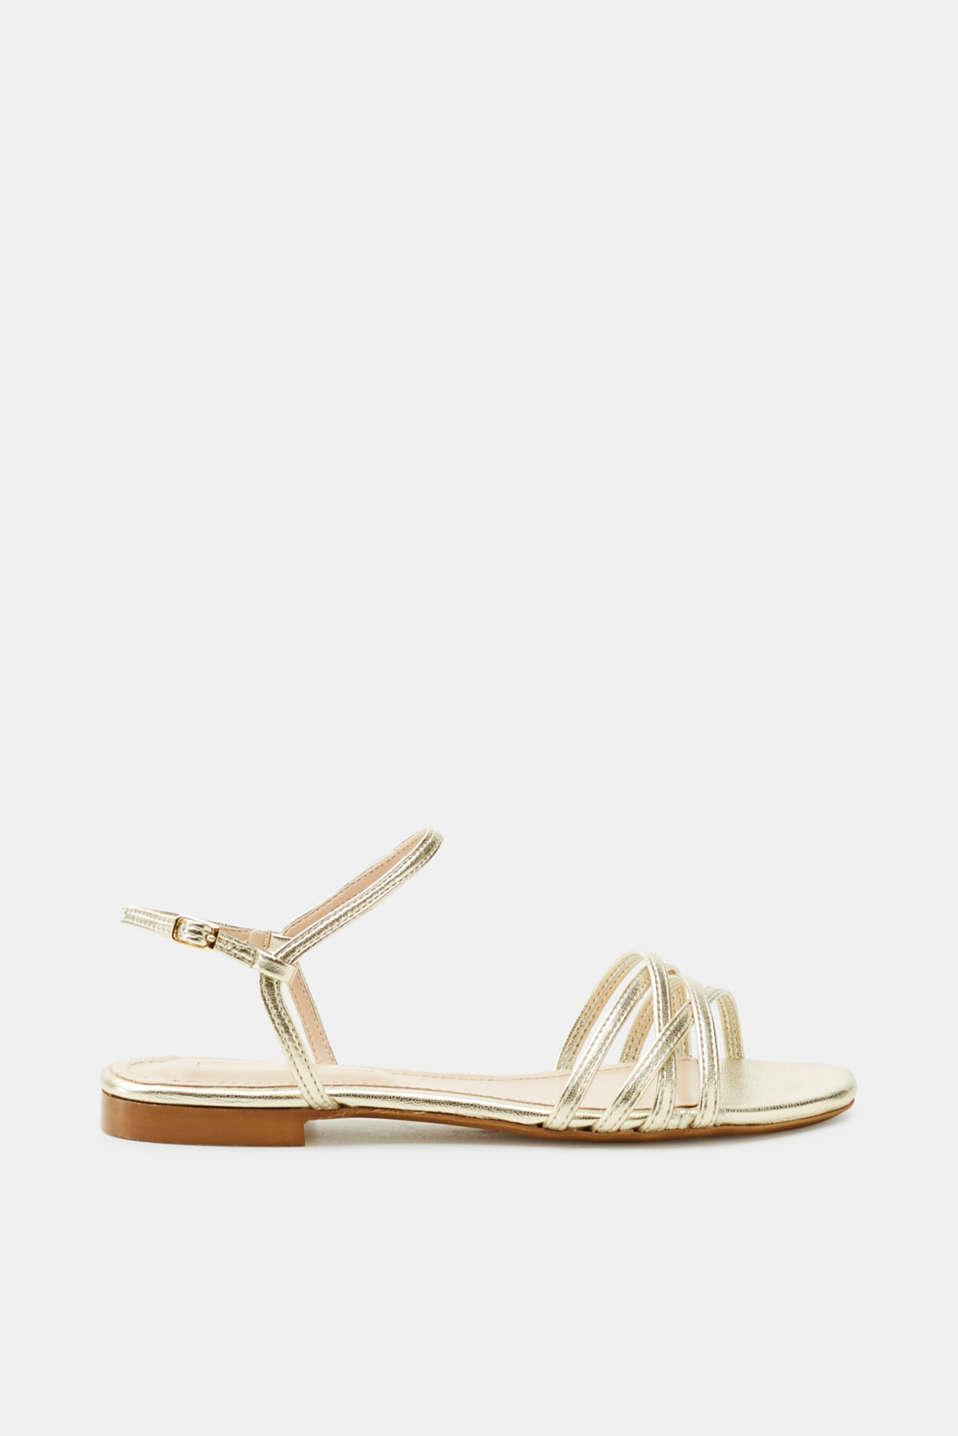 Thanks to the on-trend metallic finish, these sandals will make your look extremely eye-catching.